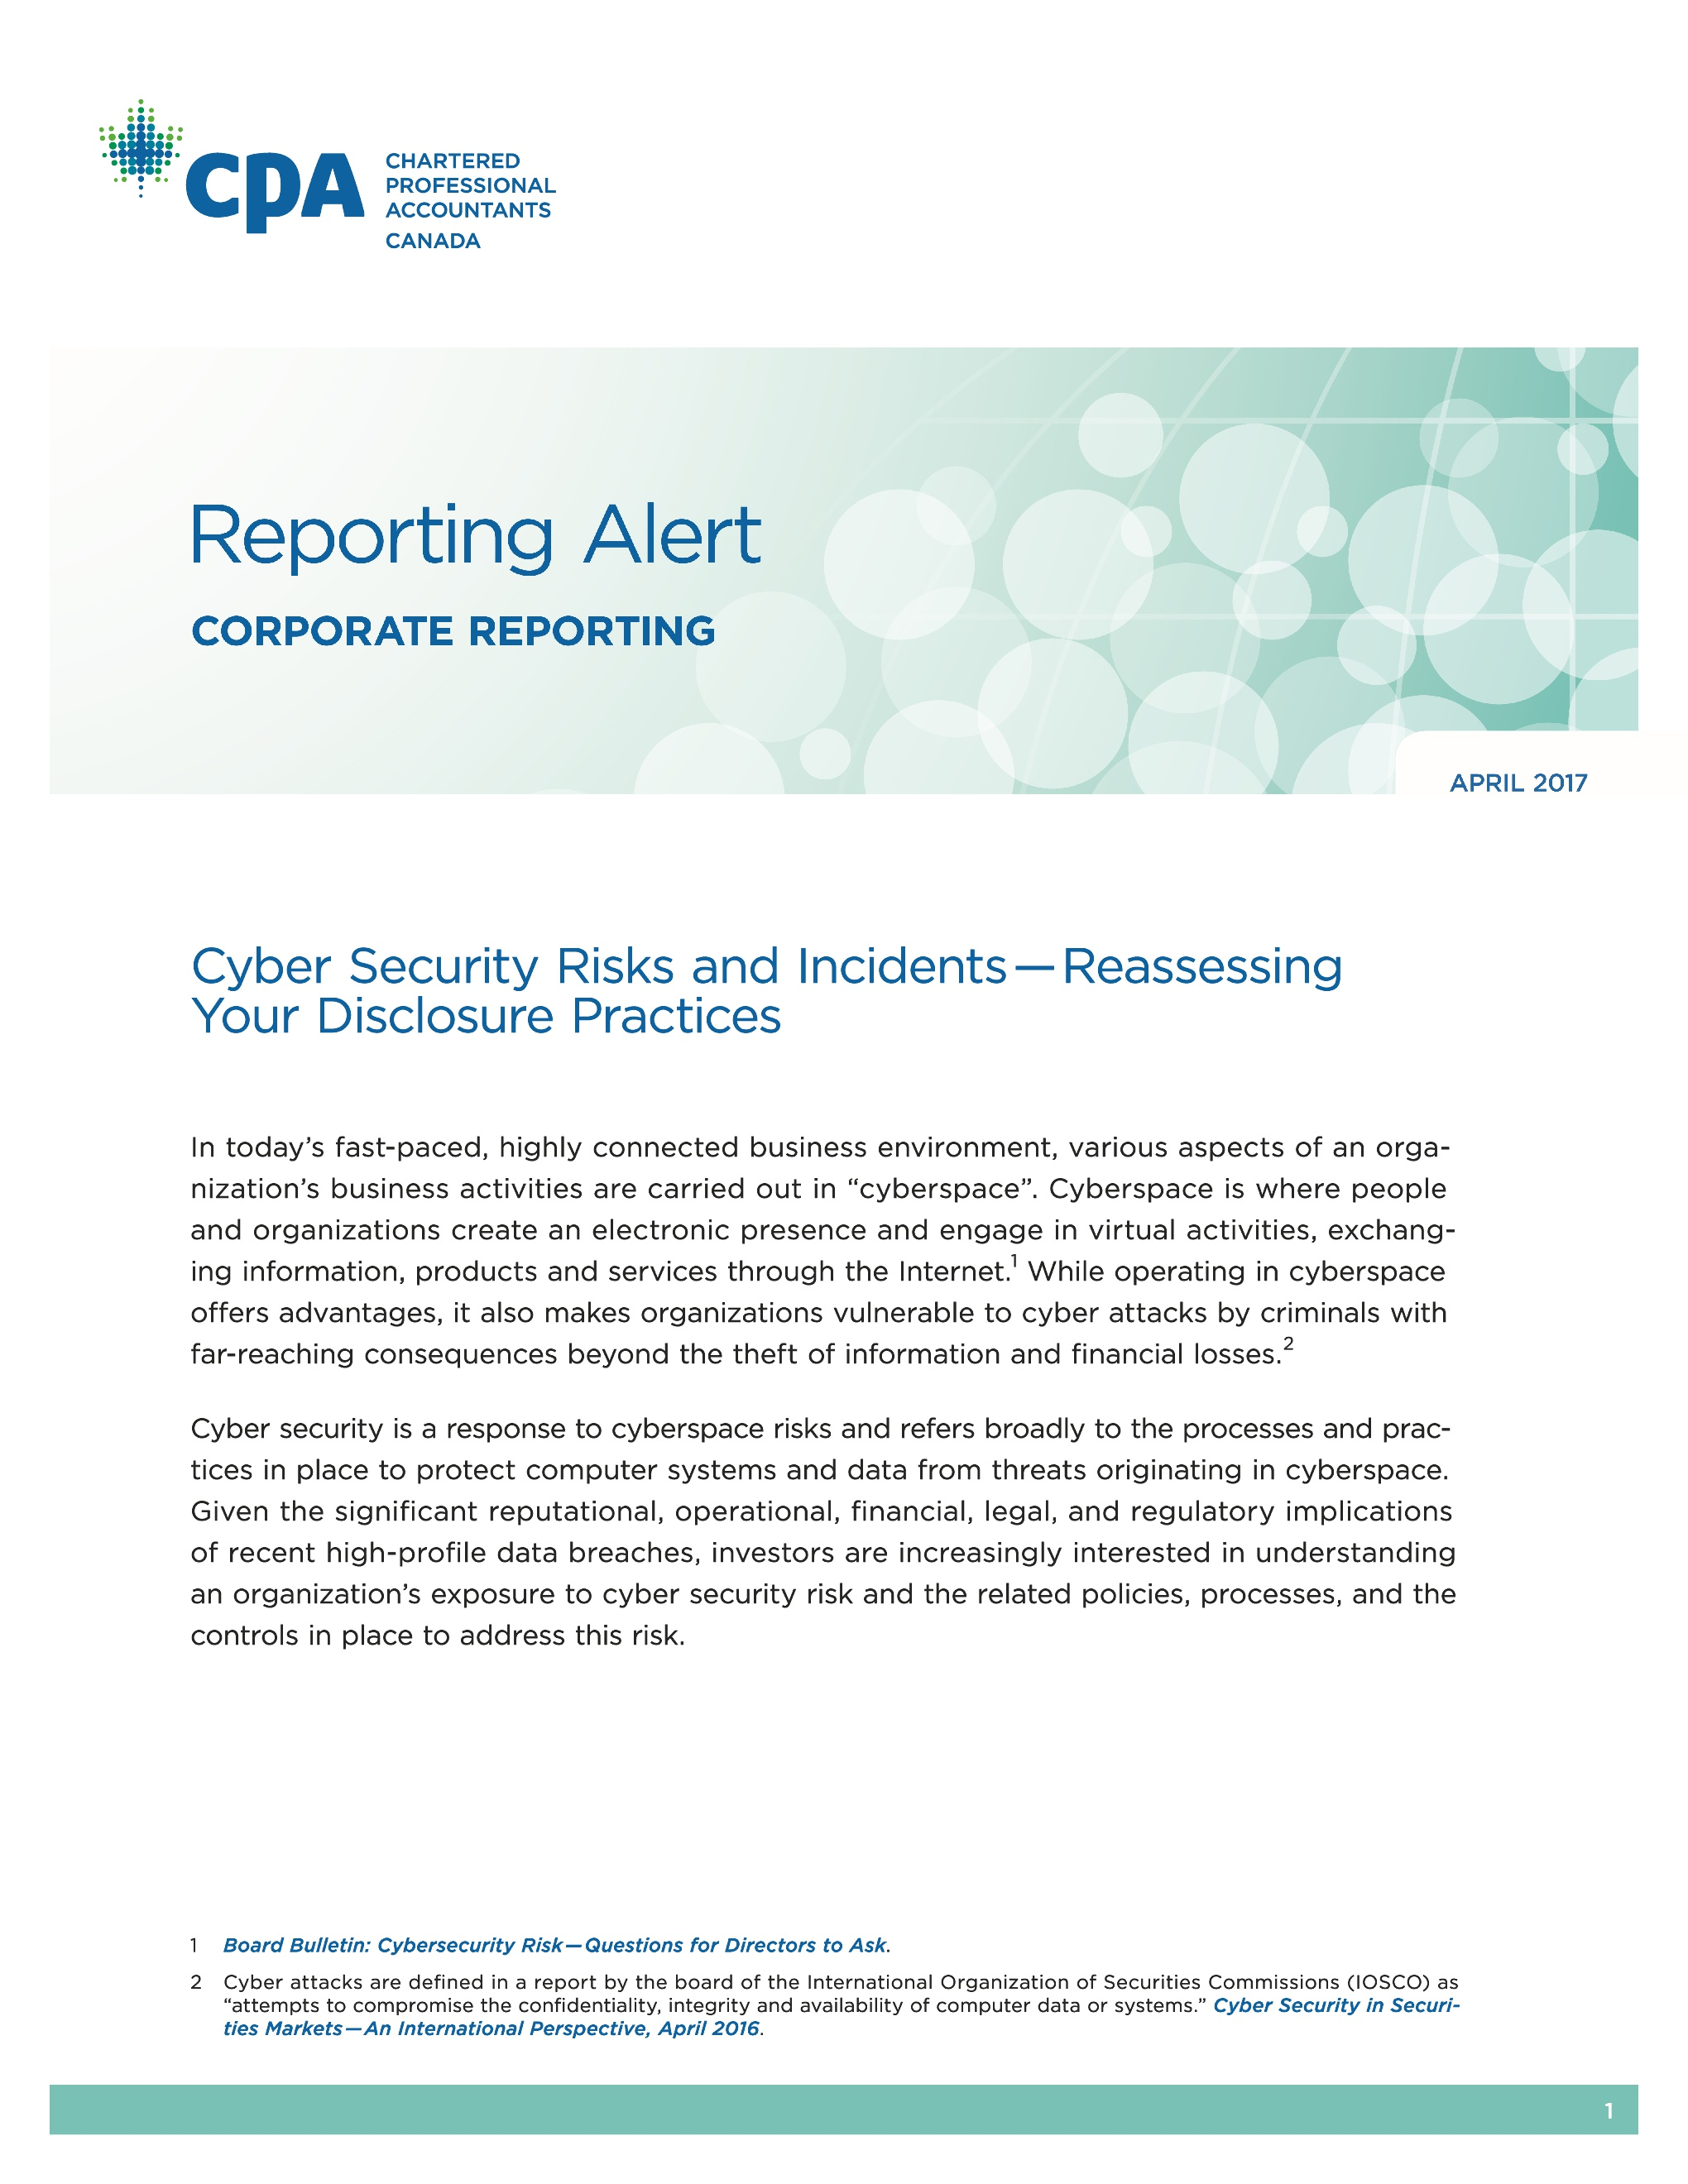 Reporting Alert: Cyber Security Risk